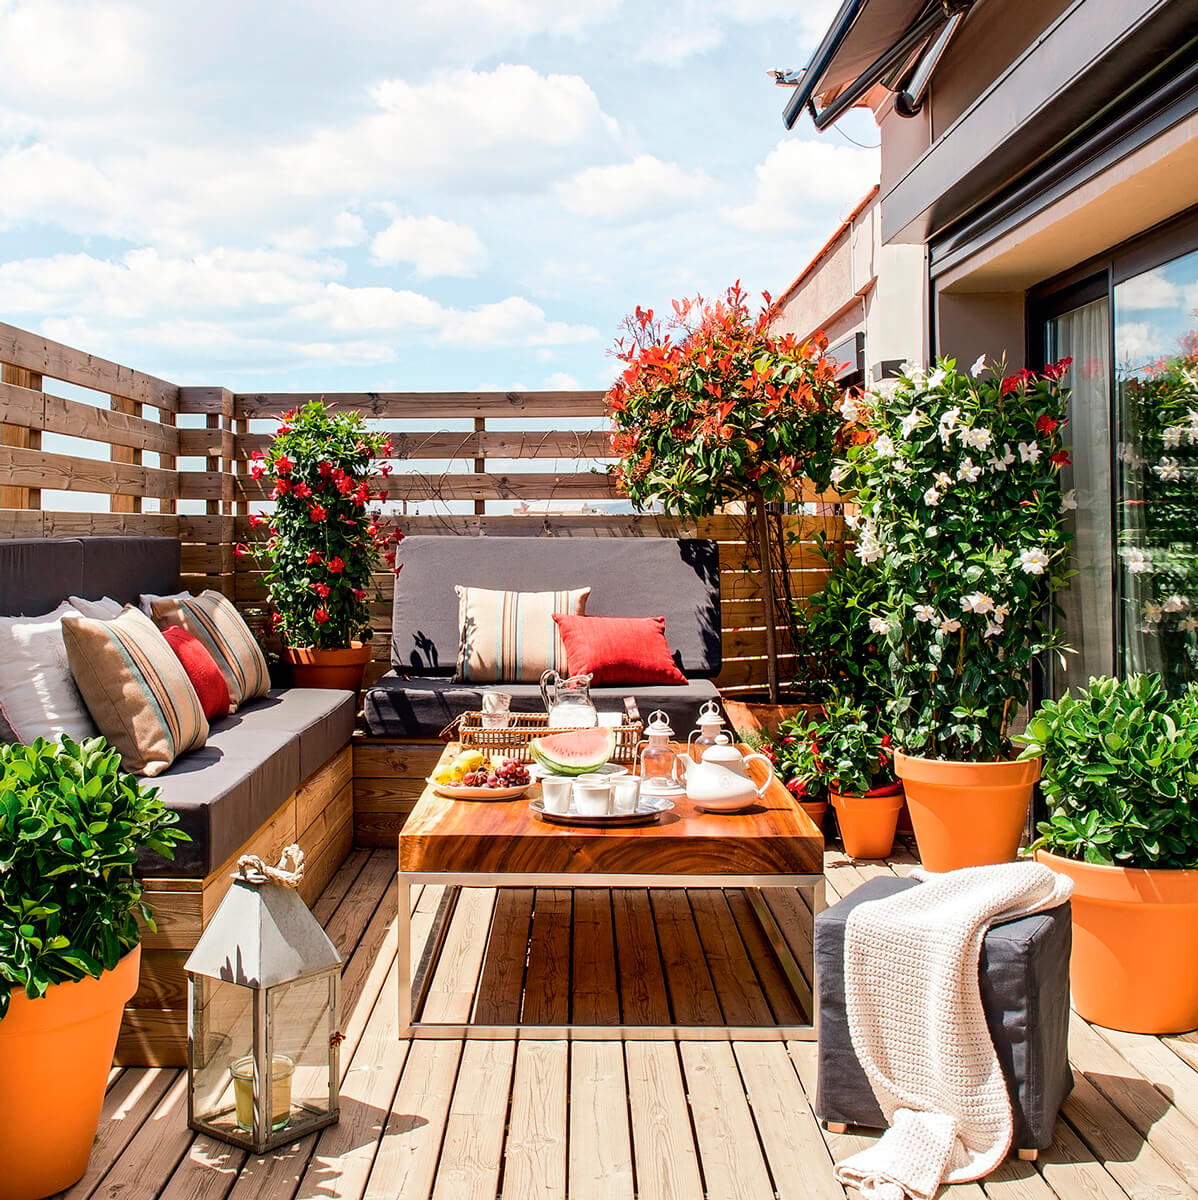 10 ideas para decorar terrazas y balcones handfie diy - La casa de las sillas madrid ...